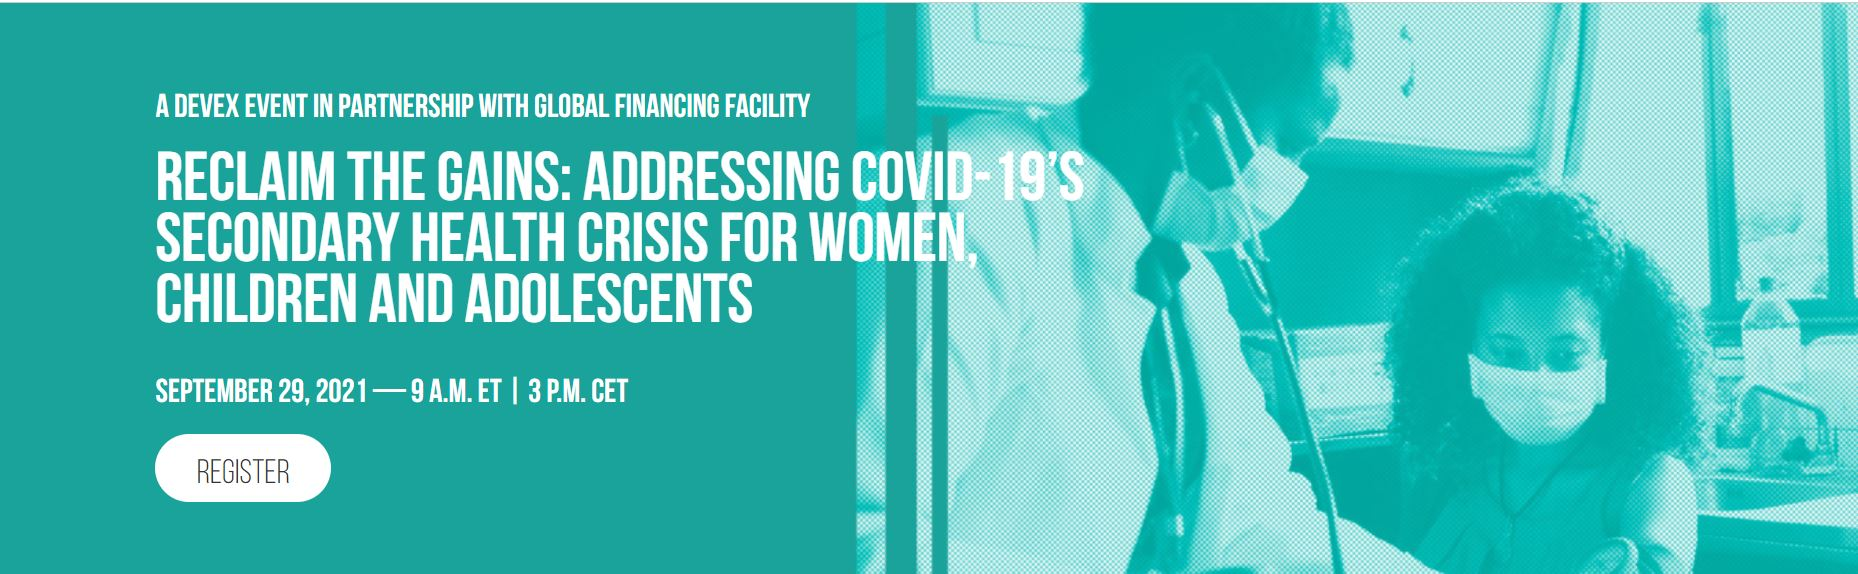 Reclaim the Gains: Addressing COVID-19's Secondary Health Crisis for Women, Children and Adolescents